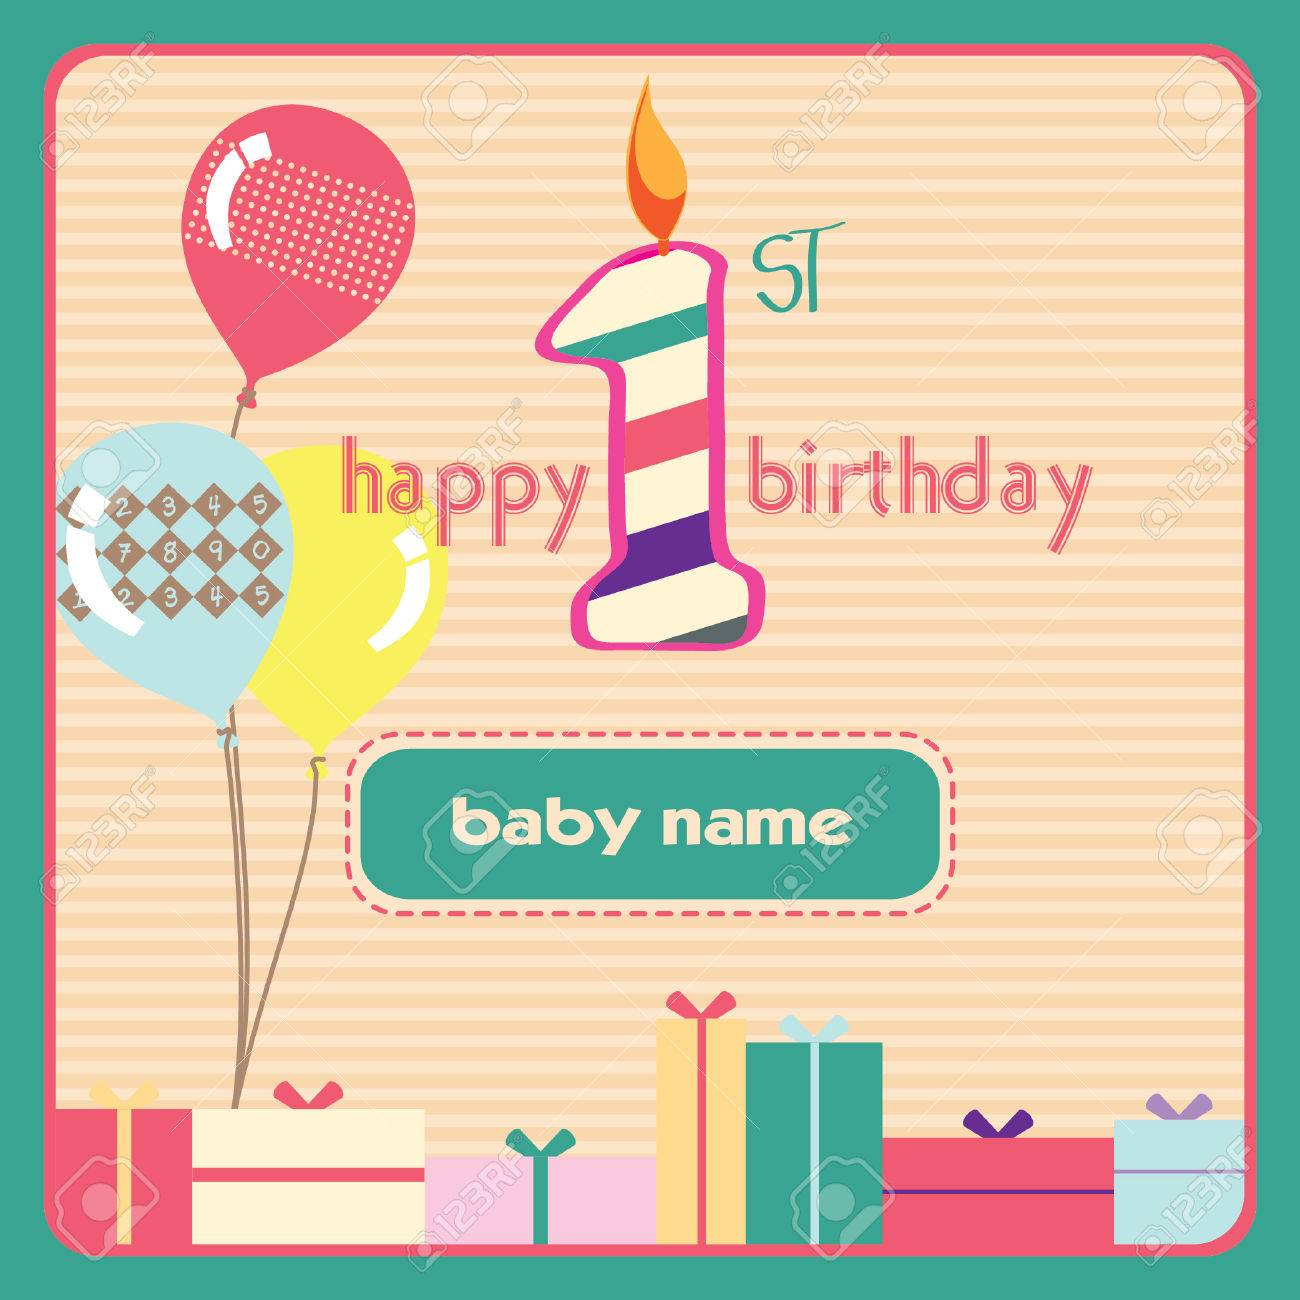 1st birthday greeting card royalty free cliparts vectors and 1st birthday greeting card stock vector 41530136 kristyandbryce Image collections